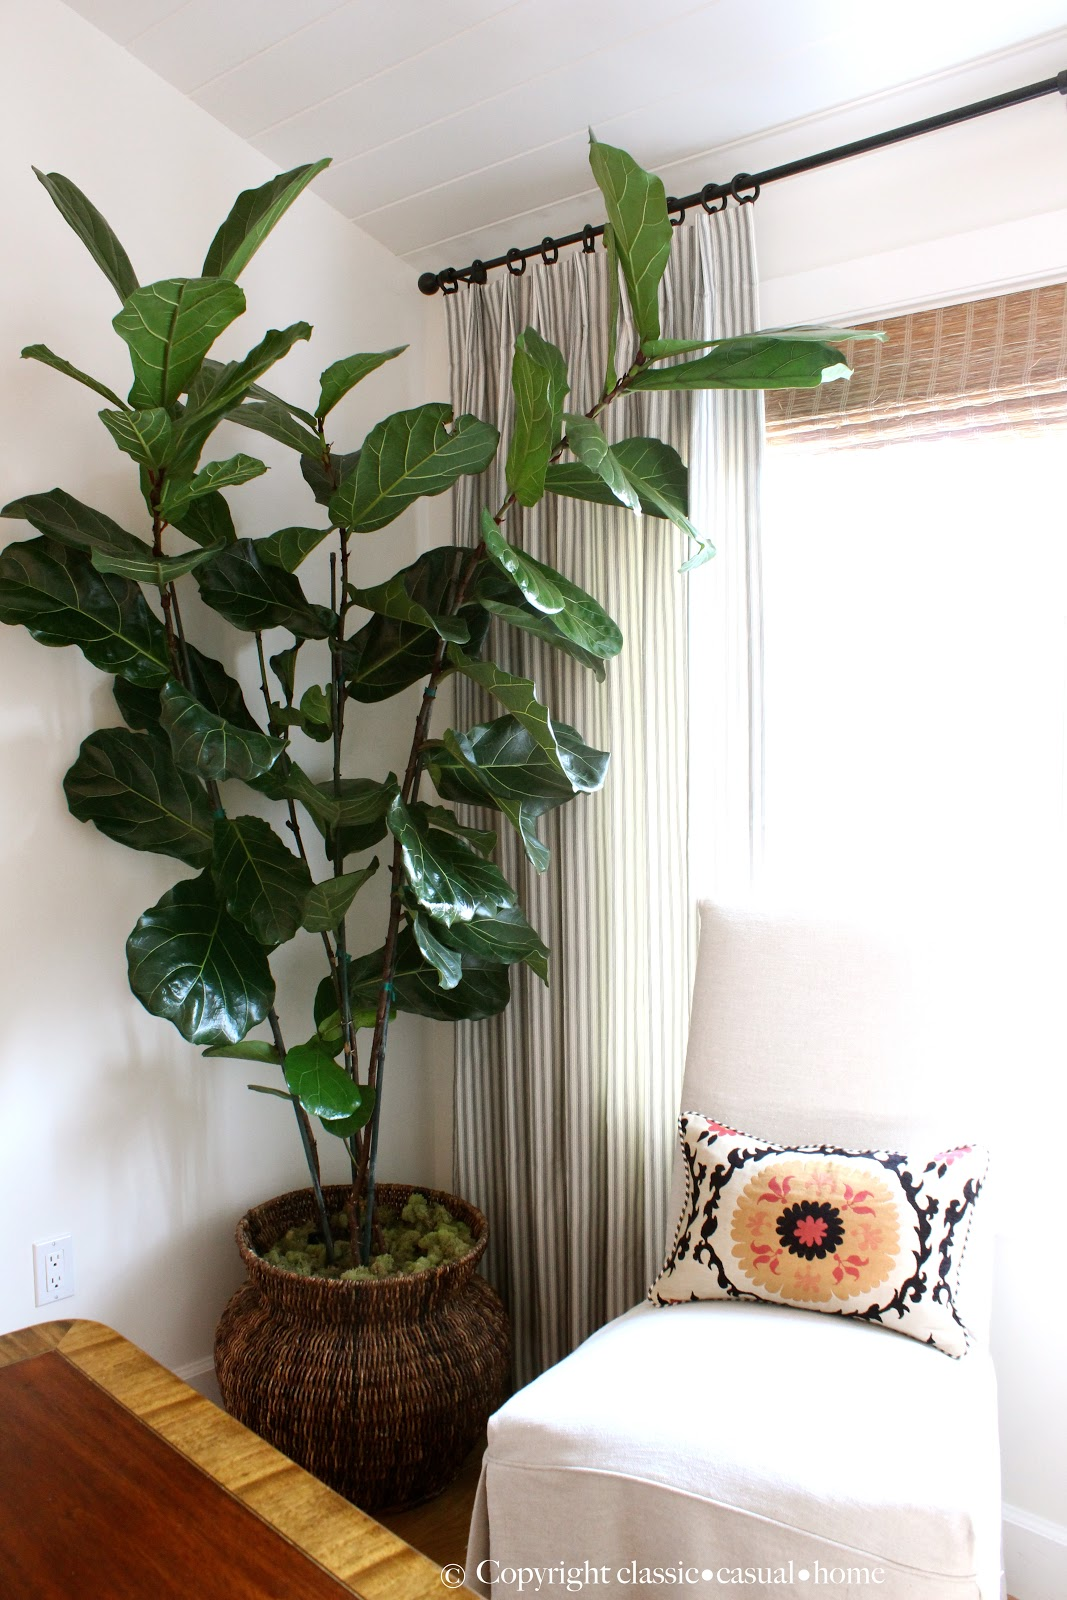 Six easy care indoor plant ideas classic casual home for Indoor plant maintenance